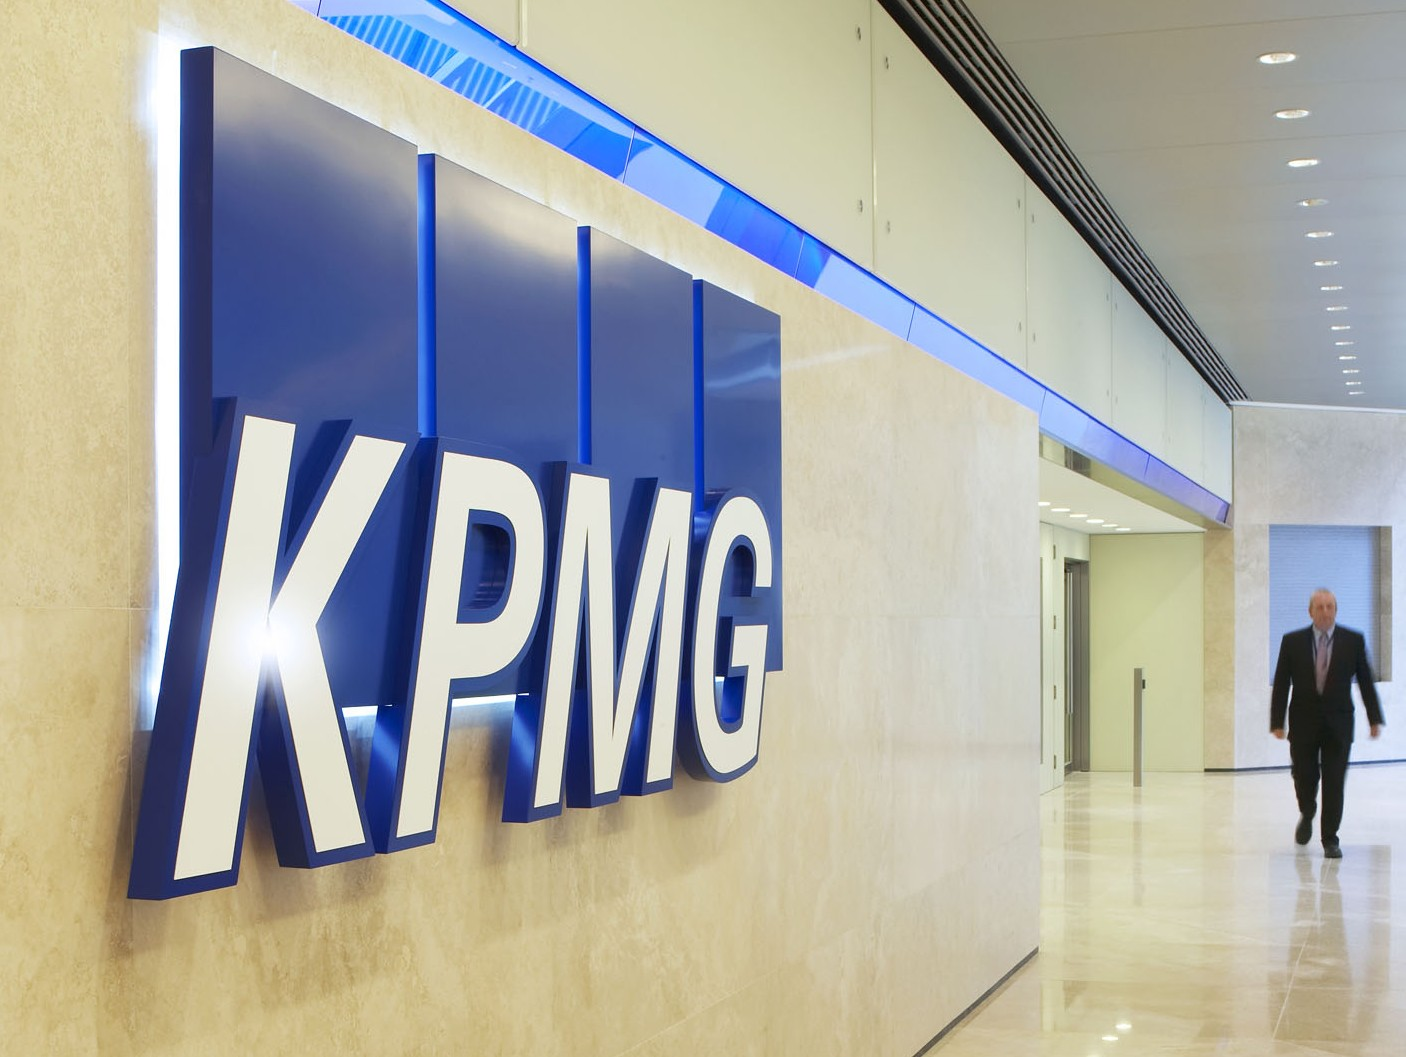 Berkeley Group hires KPMG for audit role